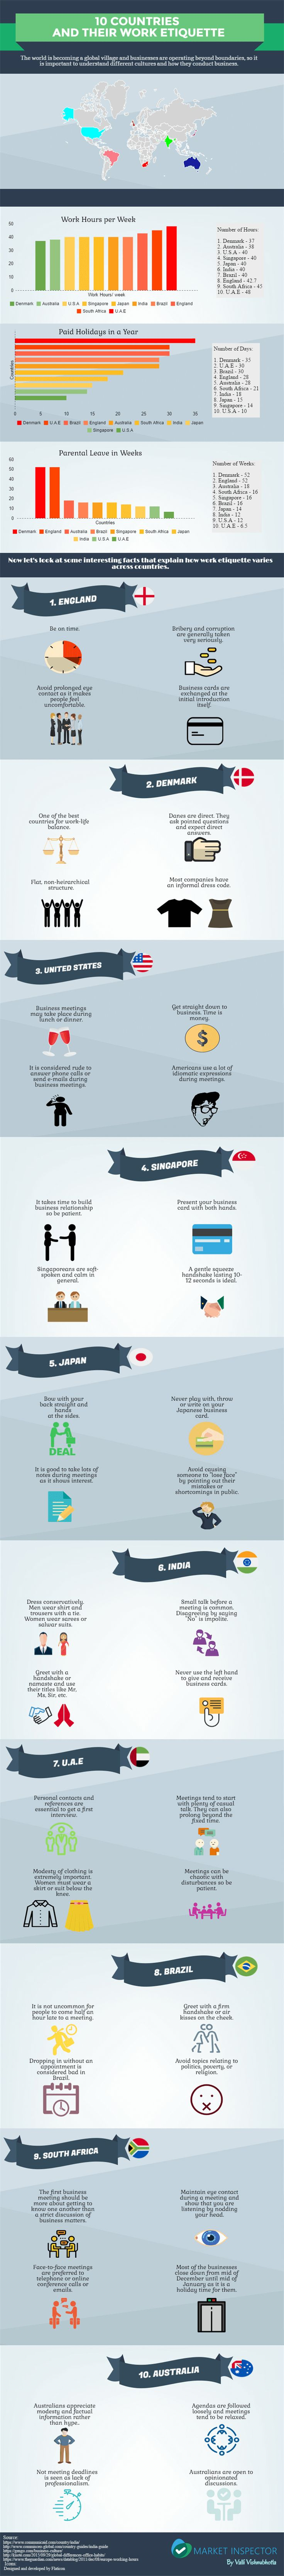 10 Countries And Their Work Etiquette Infographic